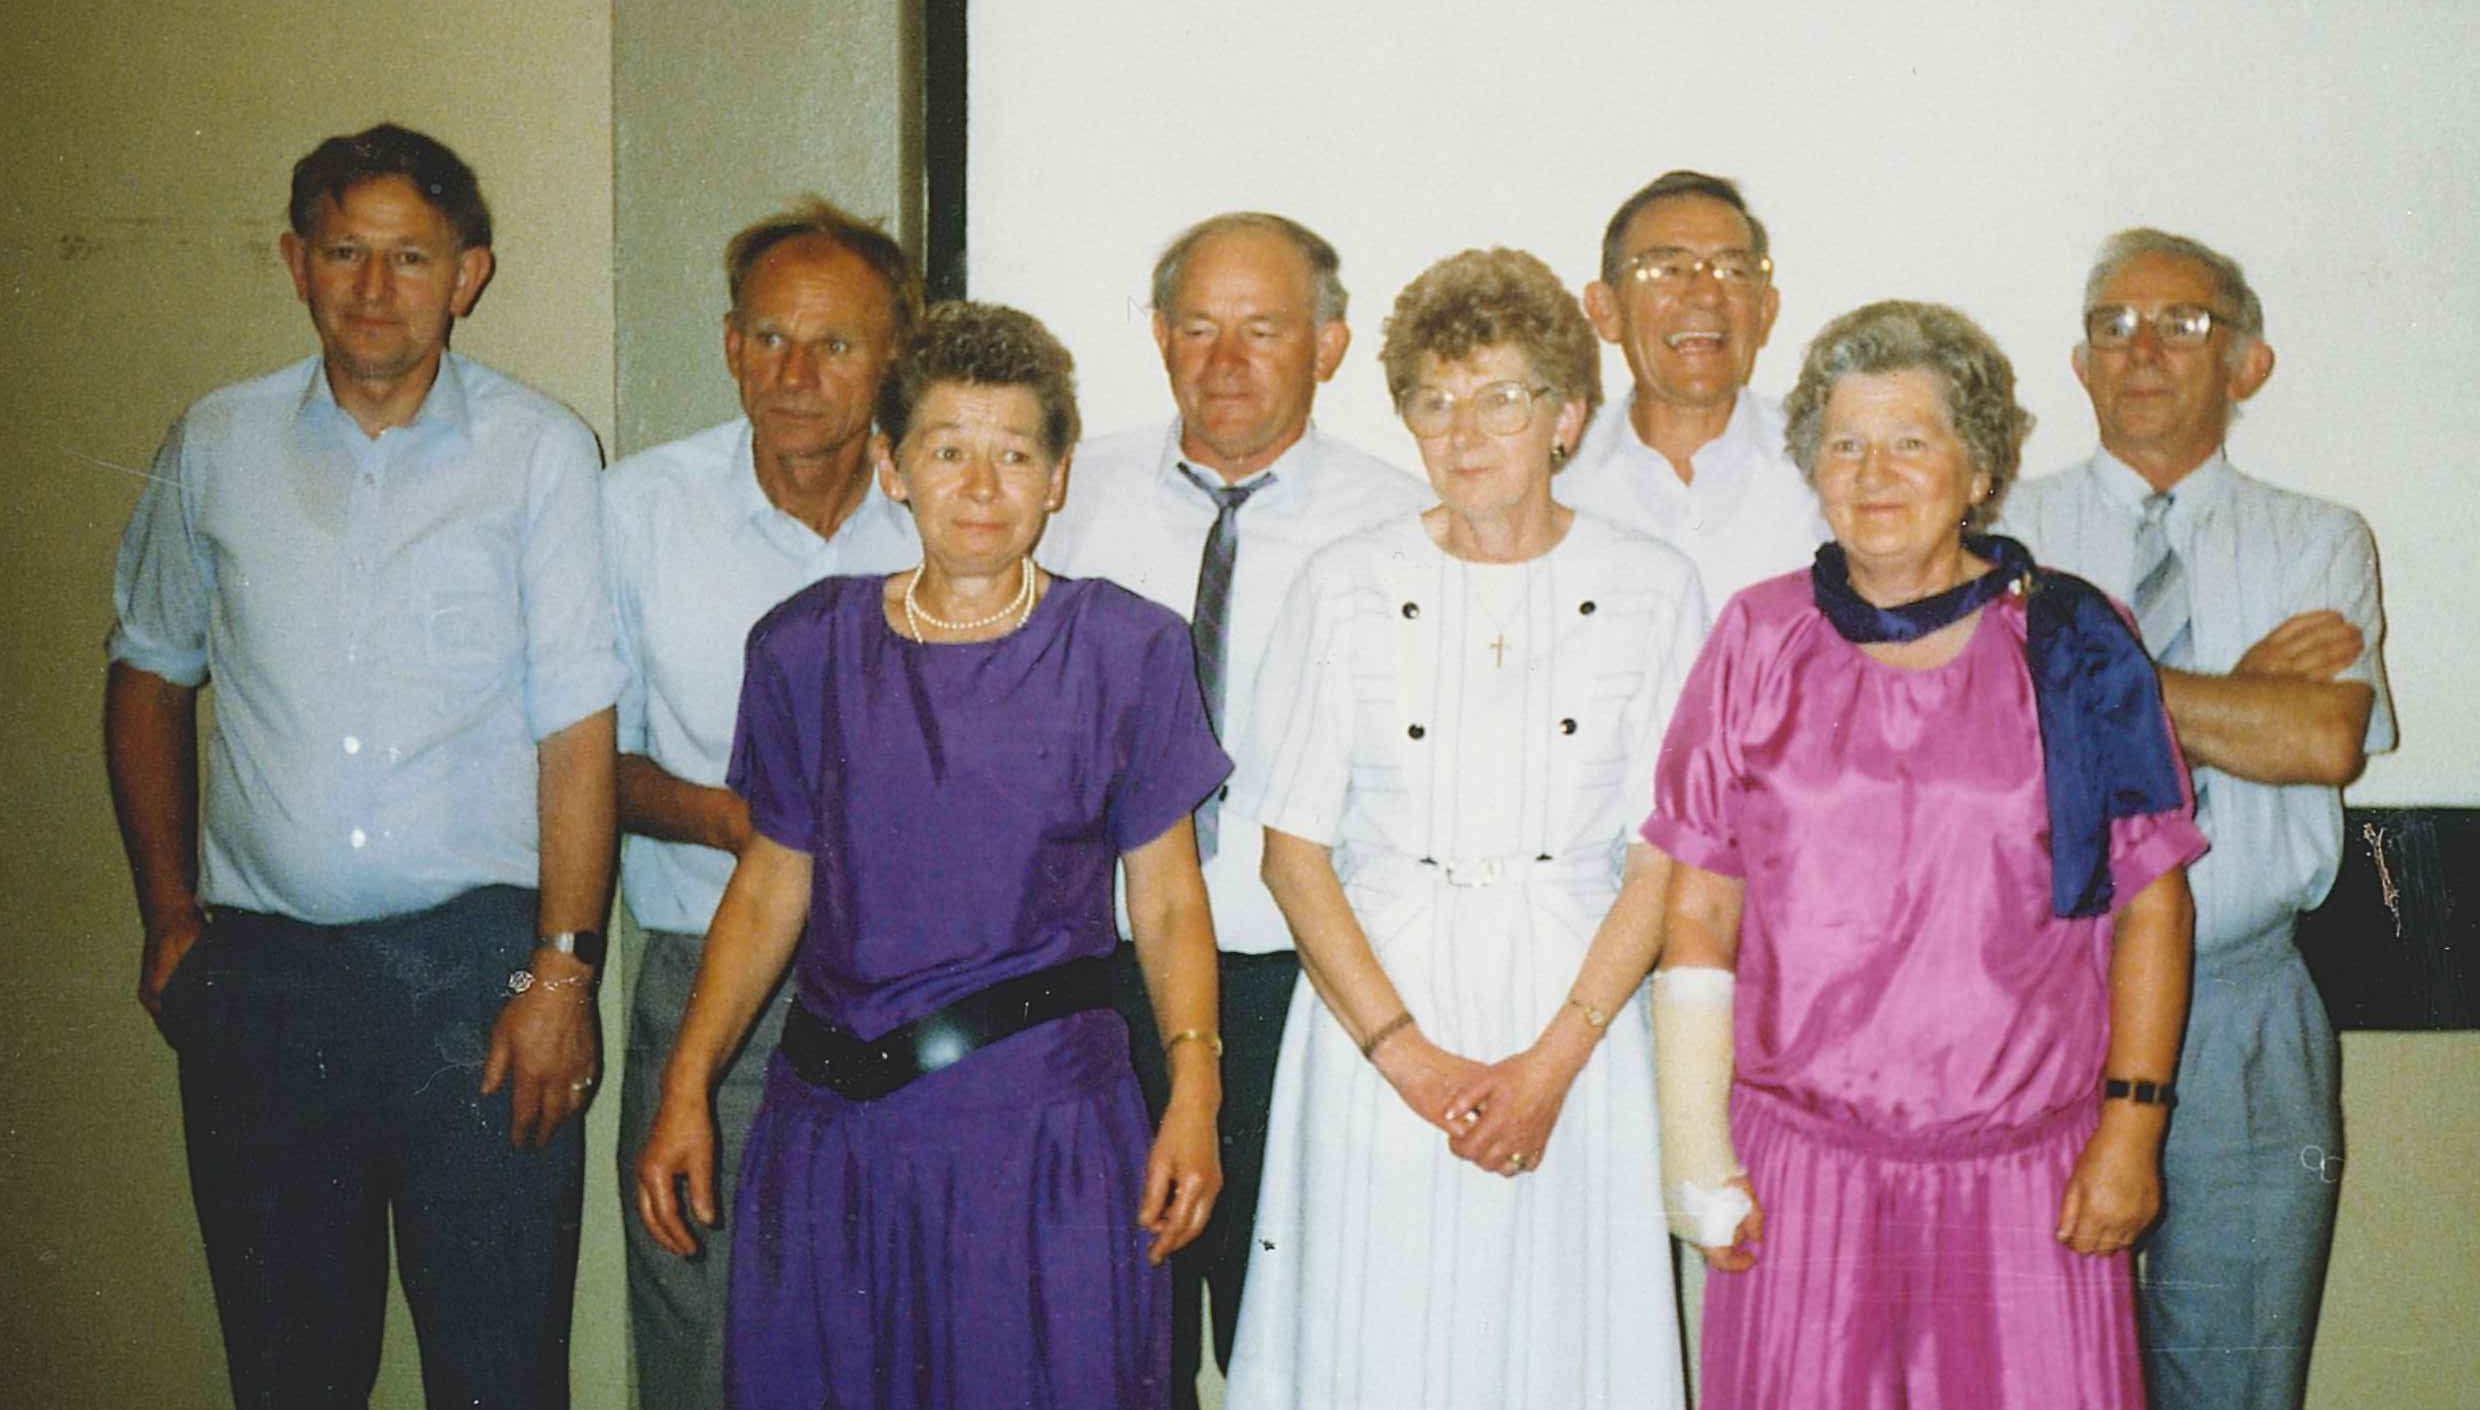 Coloured informal  photograph of the Kuklinski. The sisters are dressed in their wedding finery, the brothers less formal, in shirts but only  Tom and Joe still with their ties.